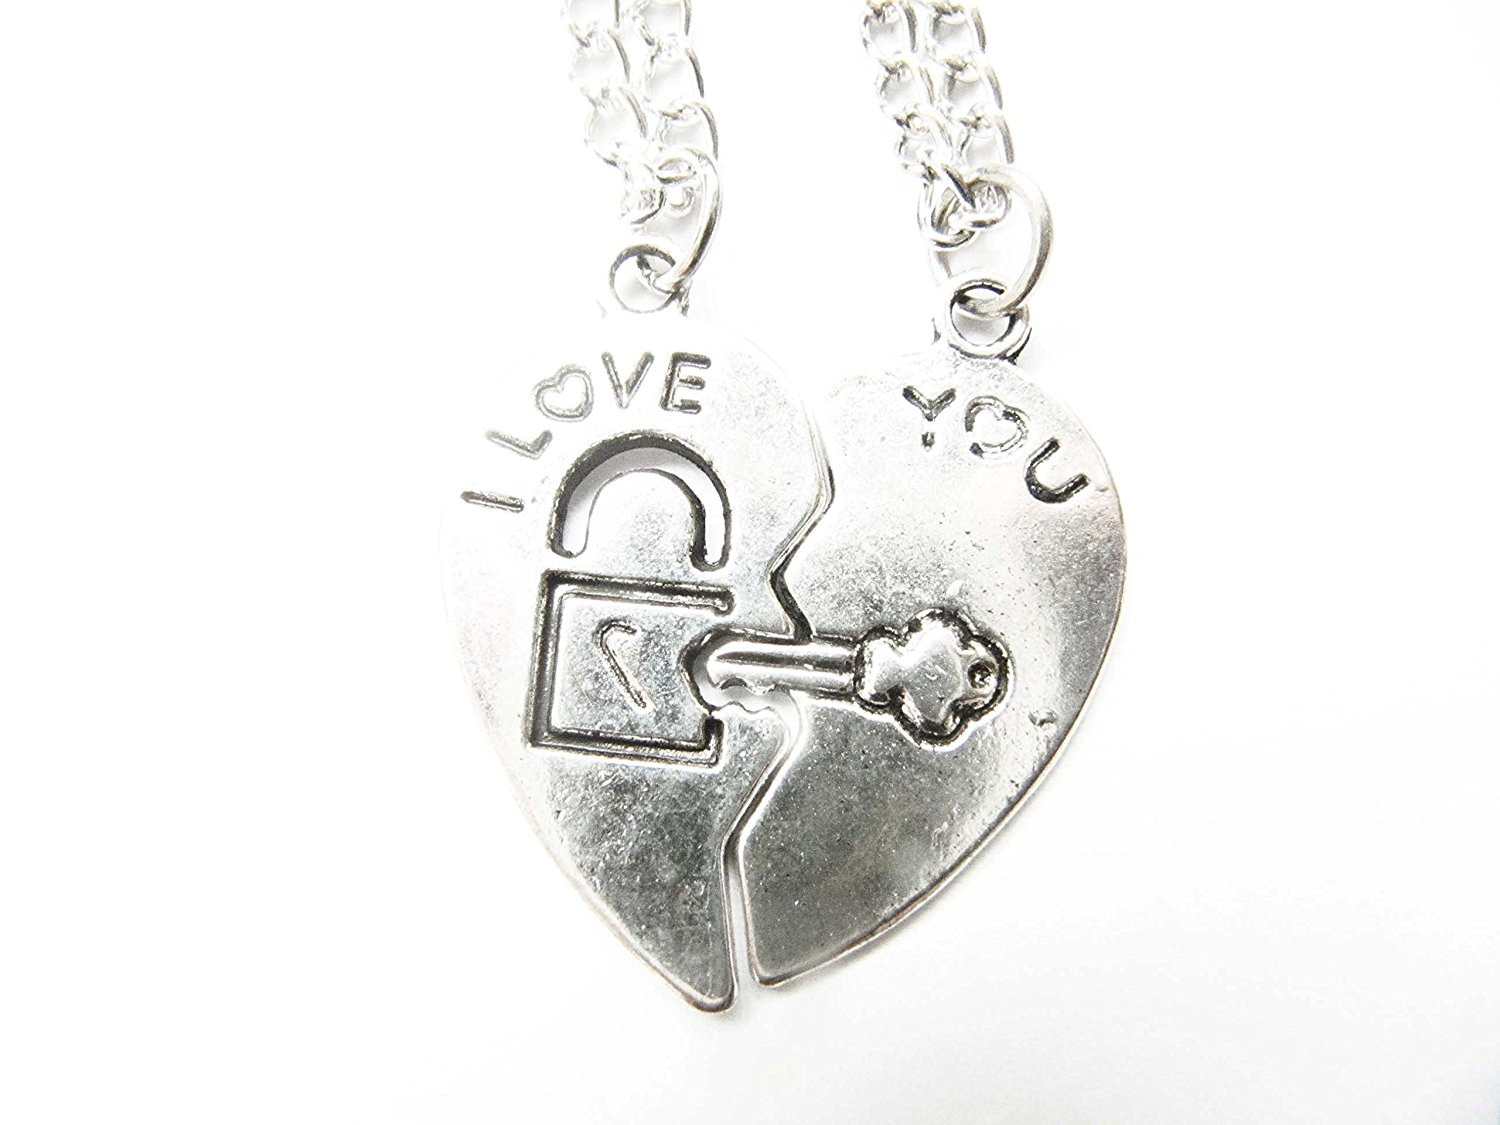 cad6bc4f59 Get Quotations · Ancient Silver I Love You Heart Necklaces,couples Pair of  Split Half Heart Necklaces -